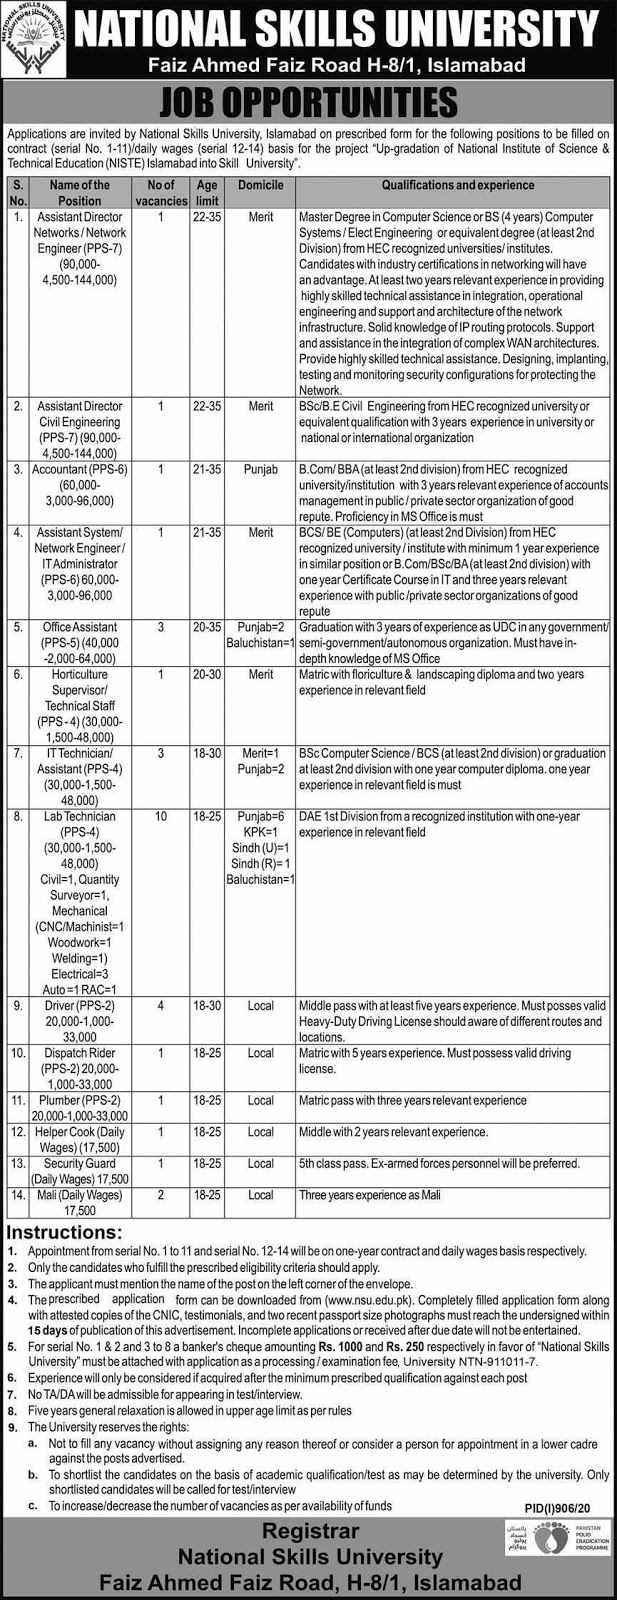 Latest National Skills University Islamabad Jobs 2020 for Office Assistant, IT Technician and more